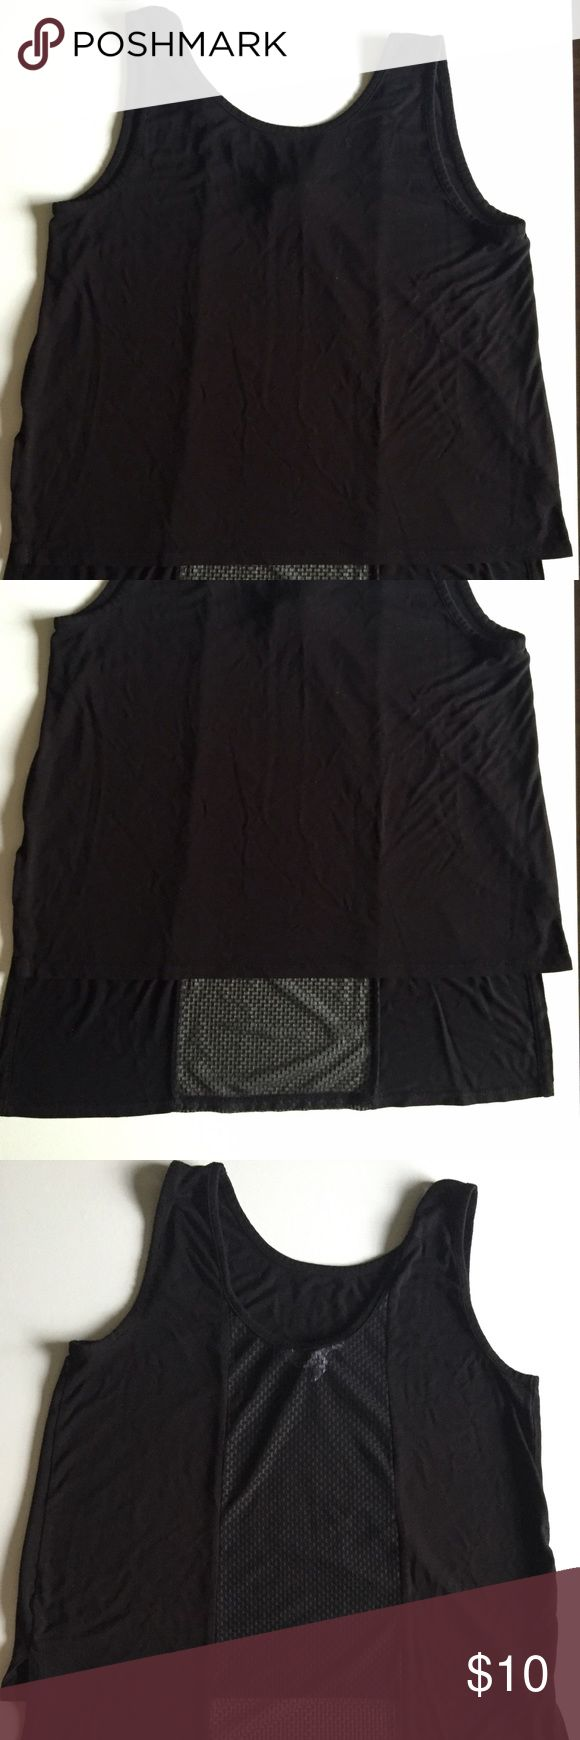 Black BCBGeneration Tank with Mesh Back Black tank top with a mesh section that runs down the back. The back of the shirt is longer than the front and the front length hits at the waist. BCBGeneration Tops Tank Tops